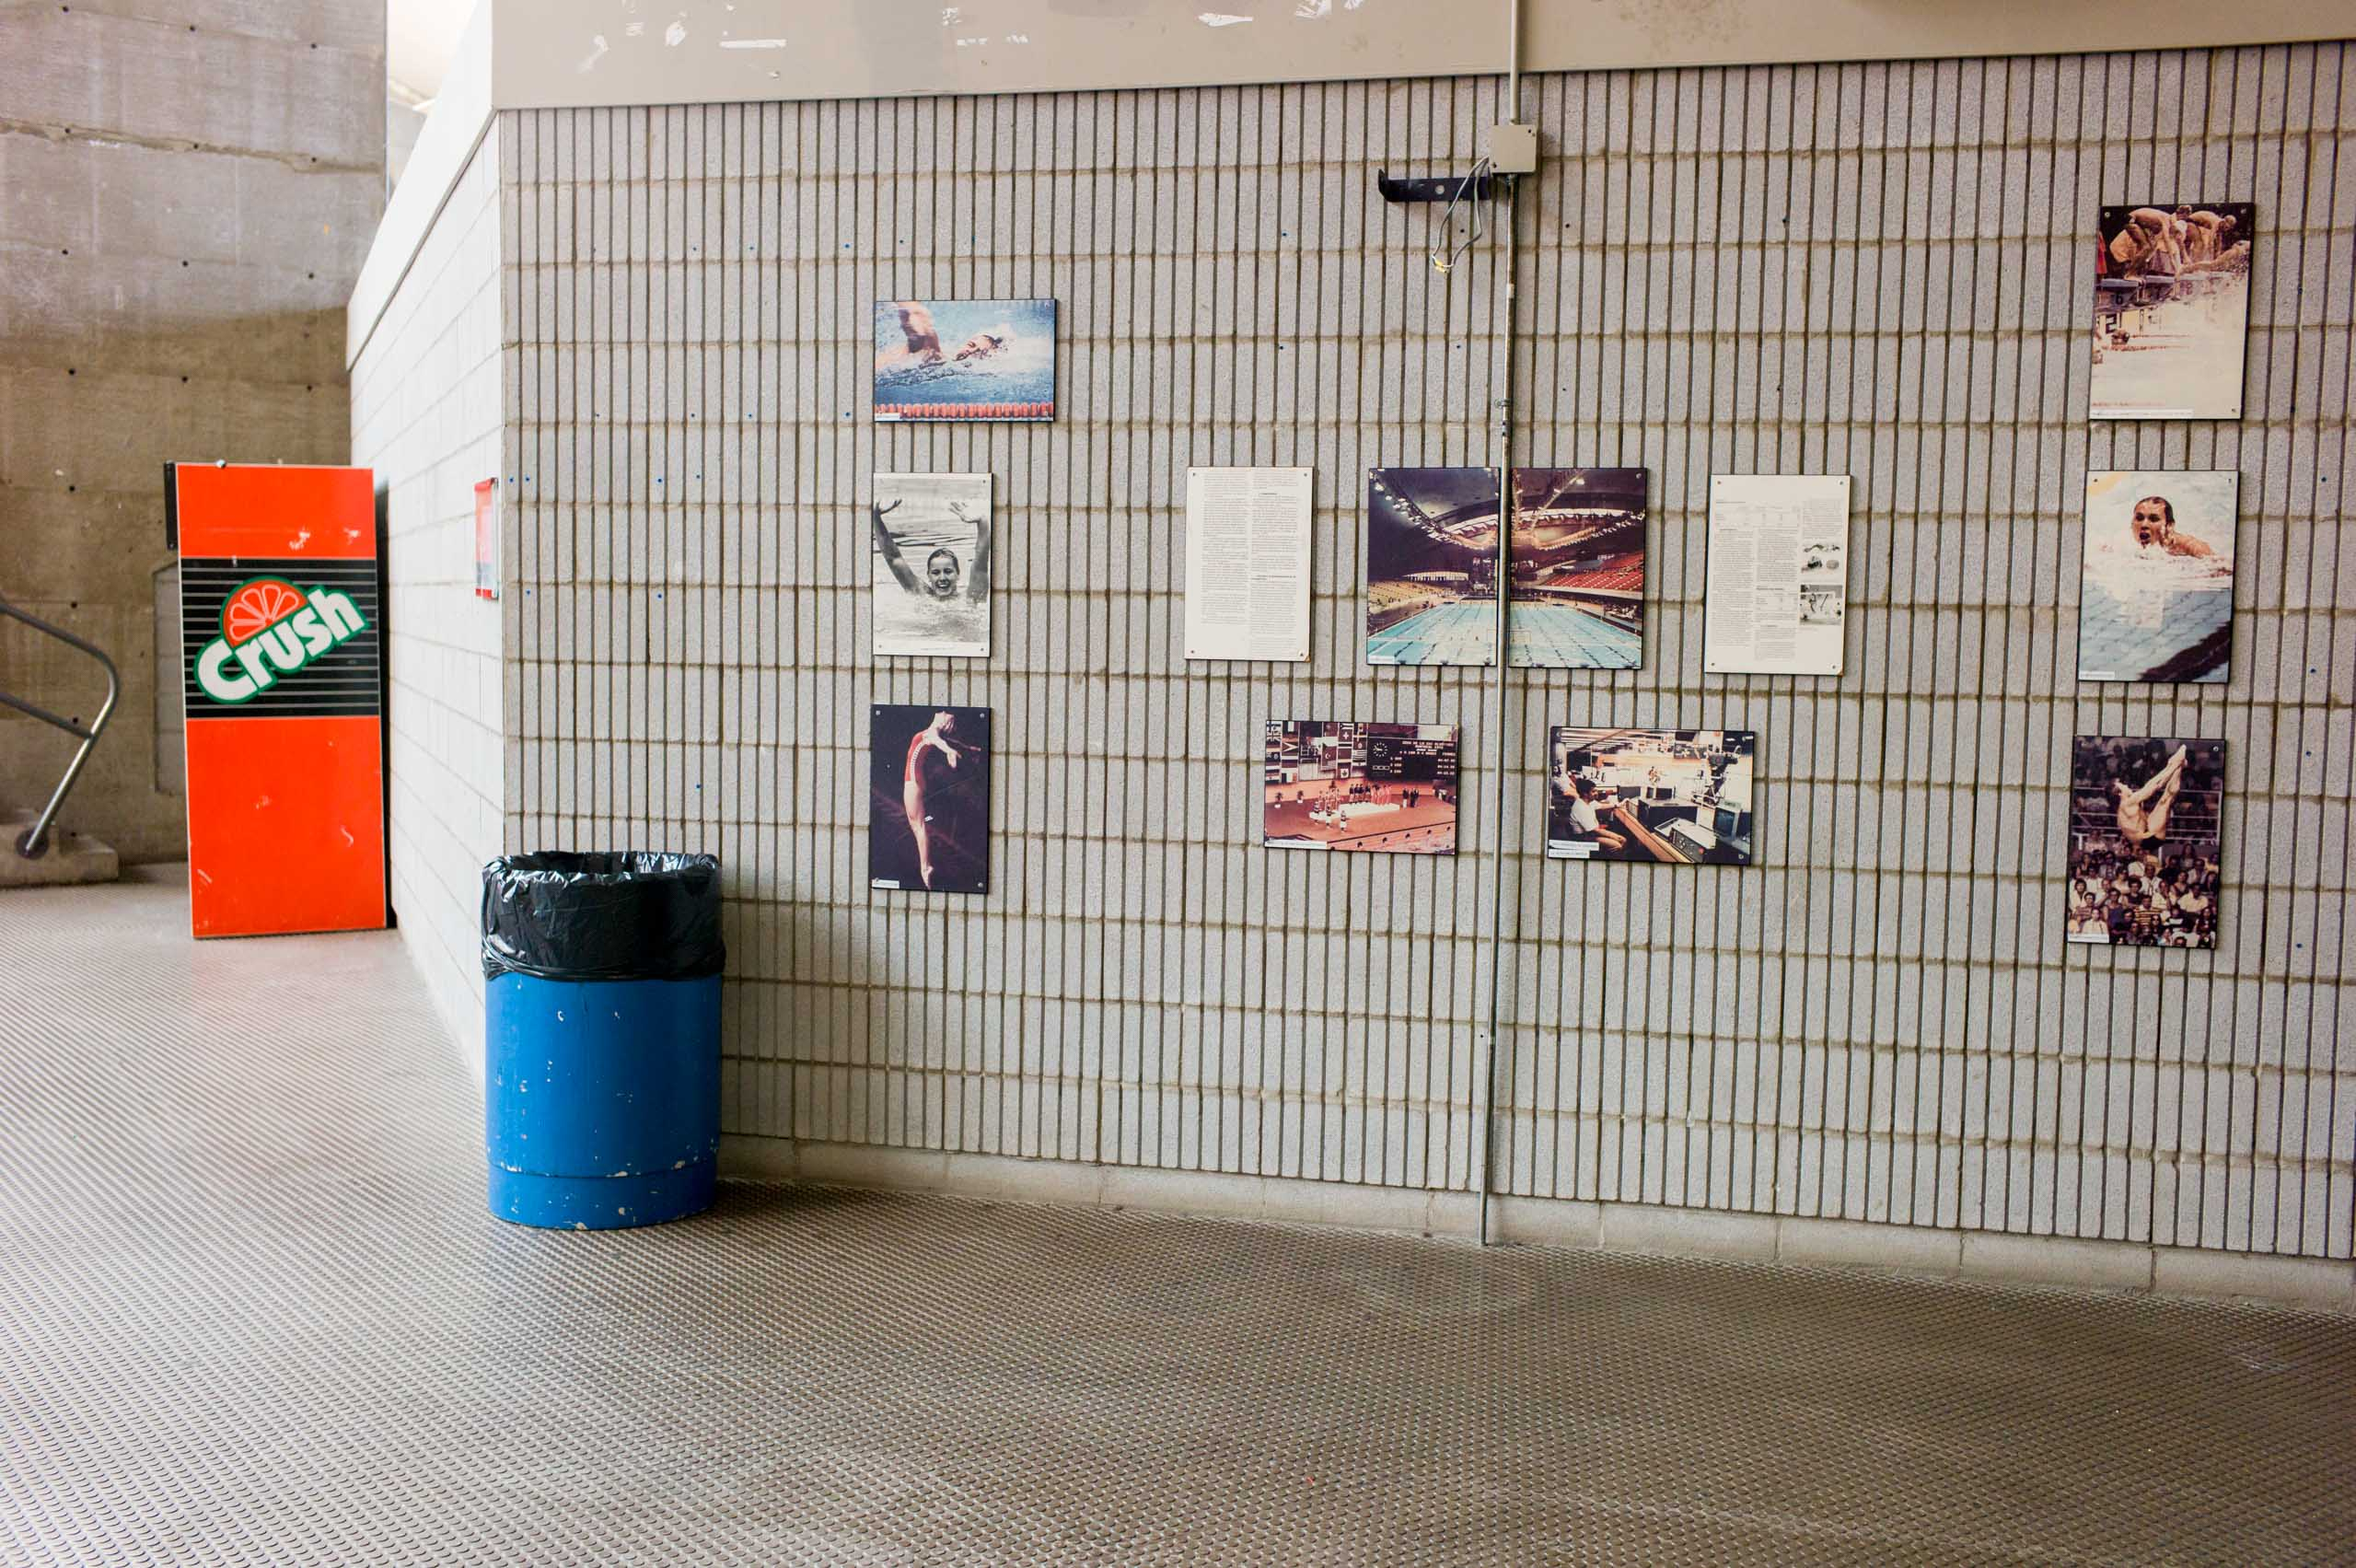 Pictures hang on the wall of the aquatics center in Montreal, host of the 1976 Summer Olympics, photographed in November 2008.